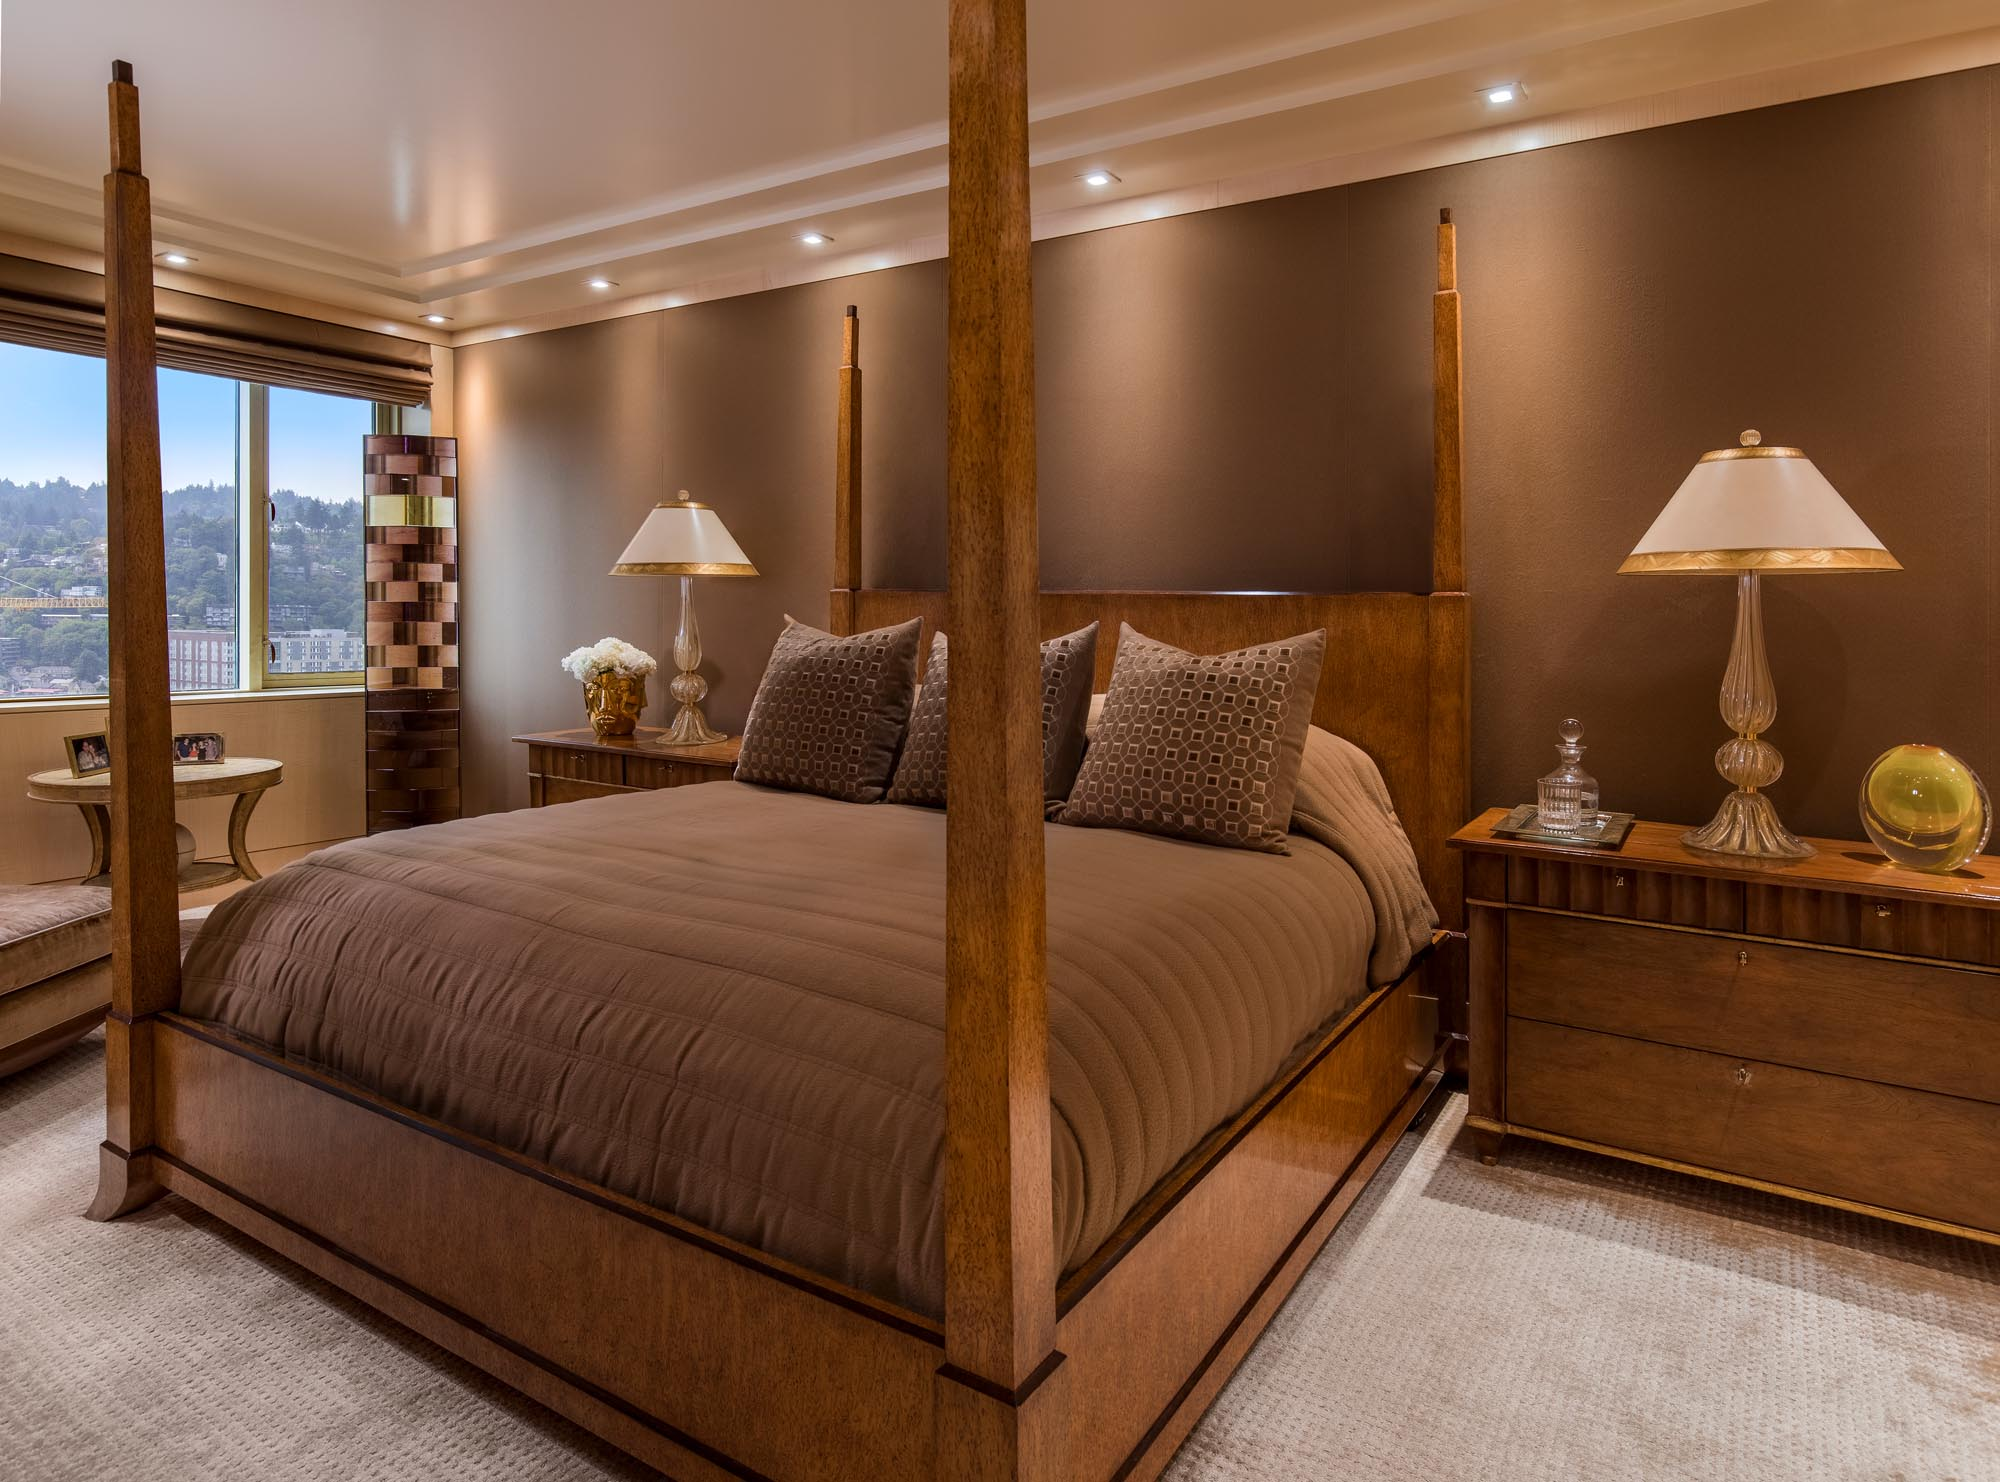 Brown painted wall bedroom with large bed, wooden bed tables and large window